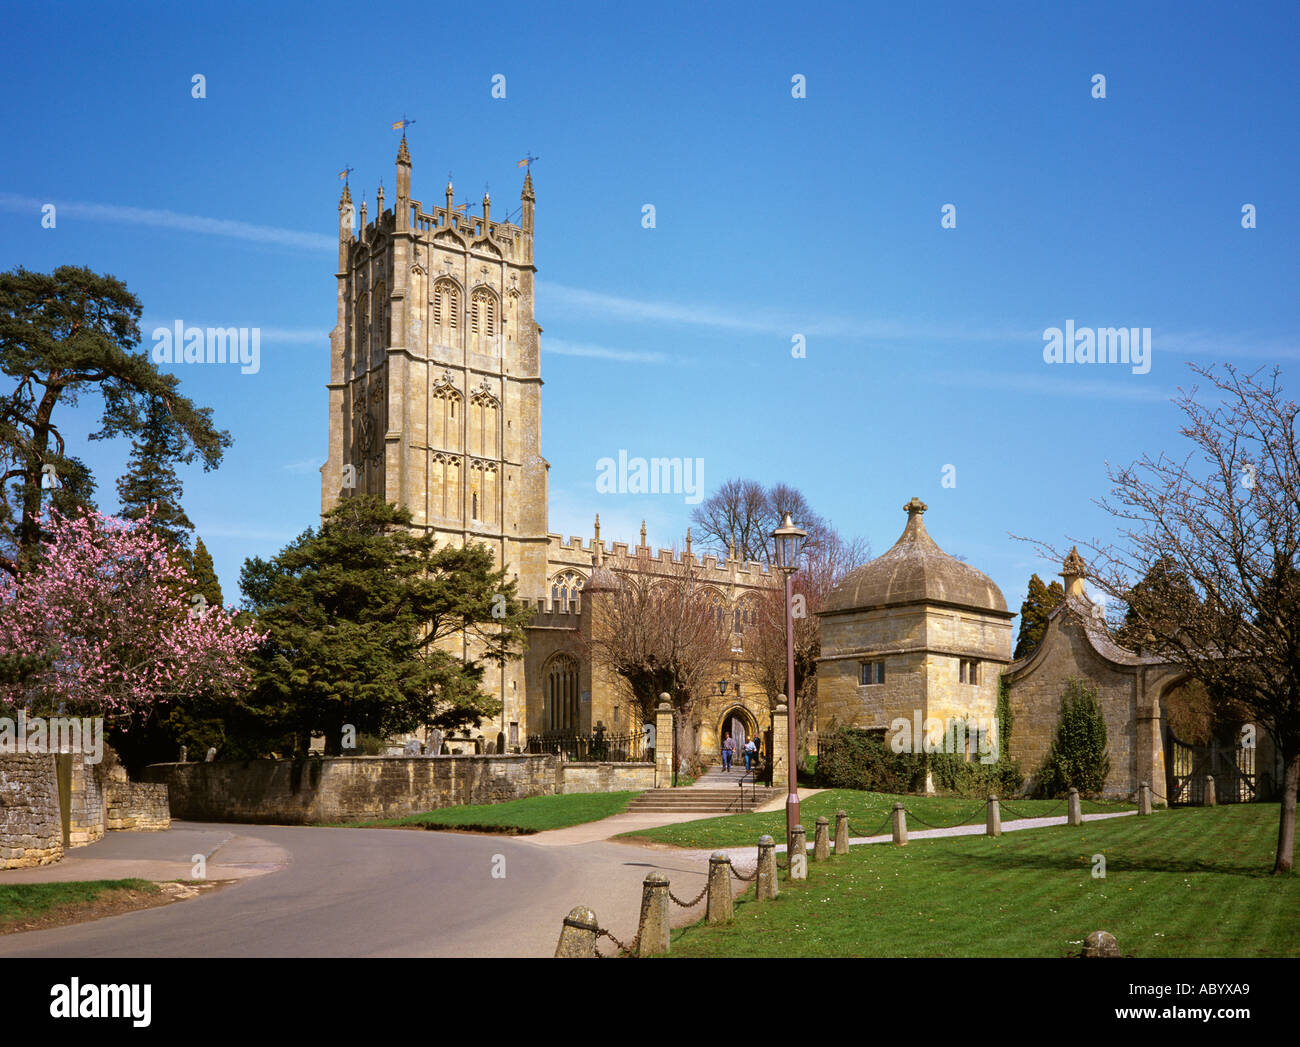 Gloucestershire Chipping Camden St James Church and gate to Camden House destroyed in Civil War - Stock Image